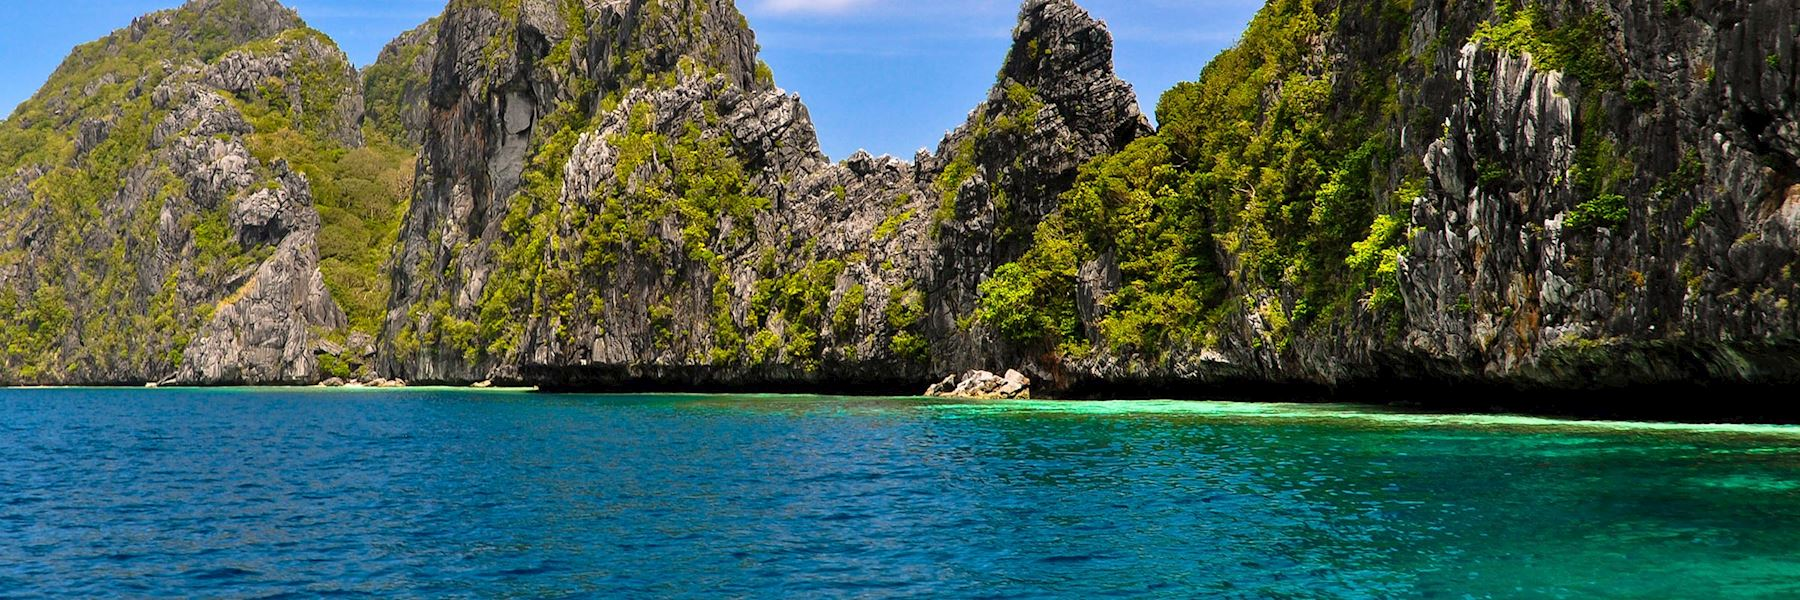 The Philippines travel advice